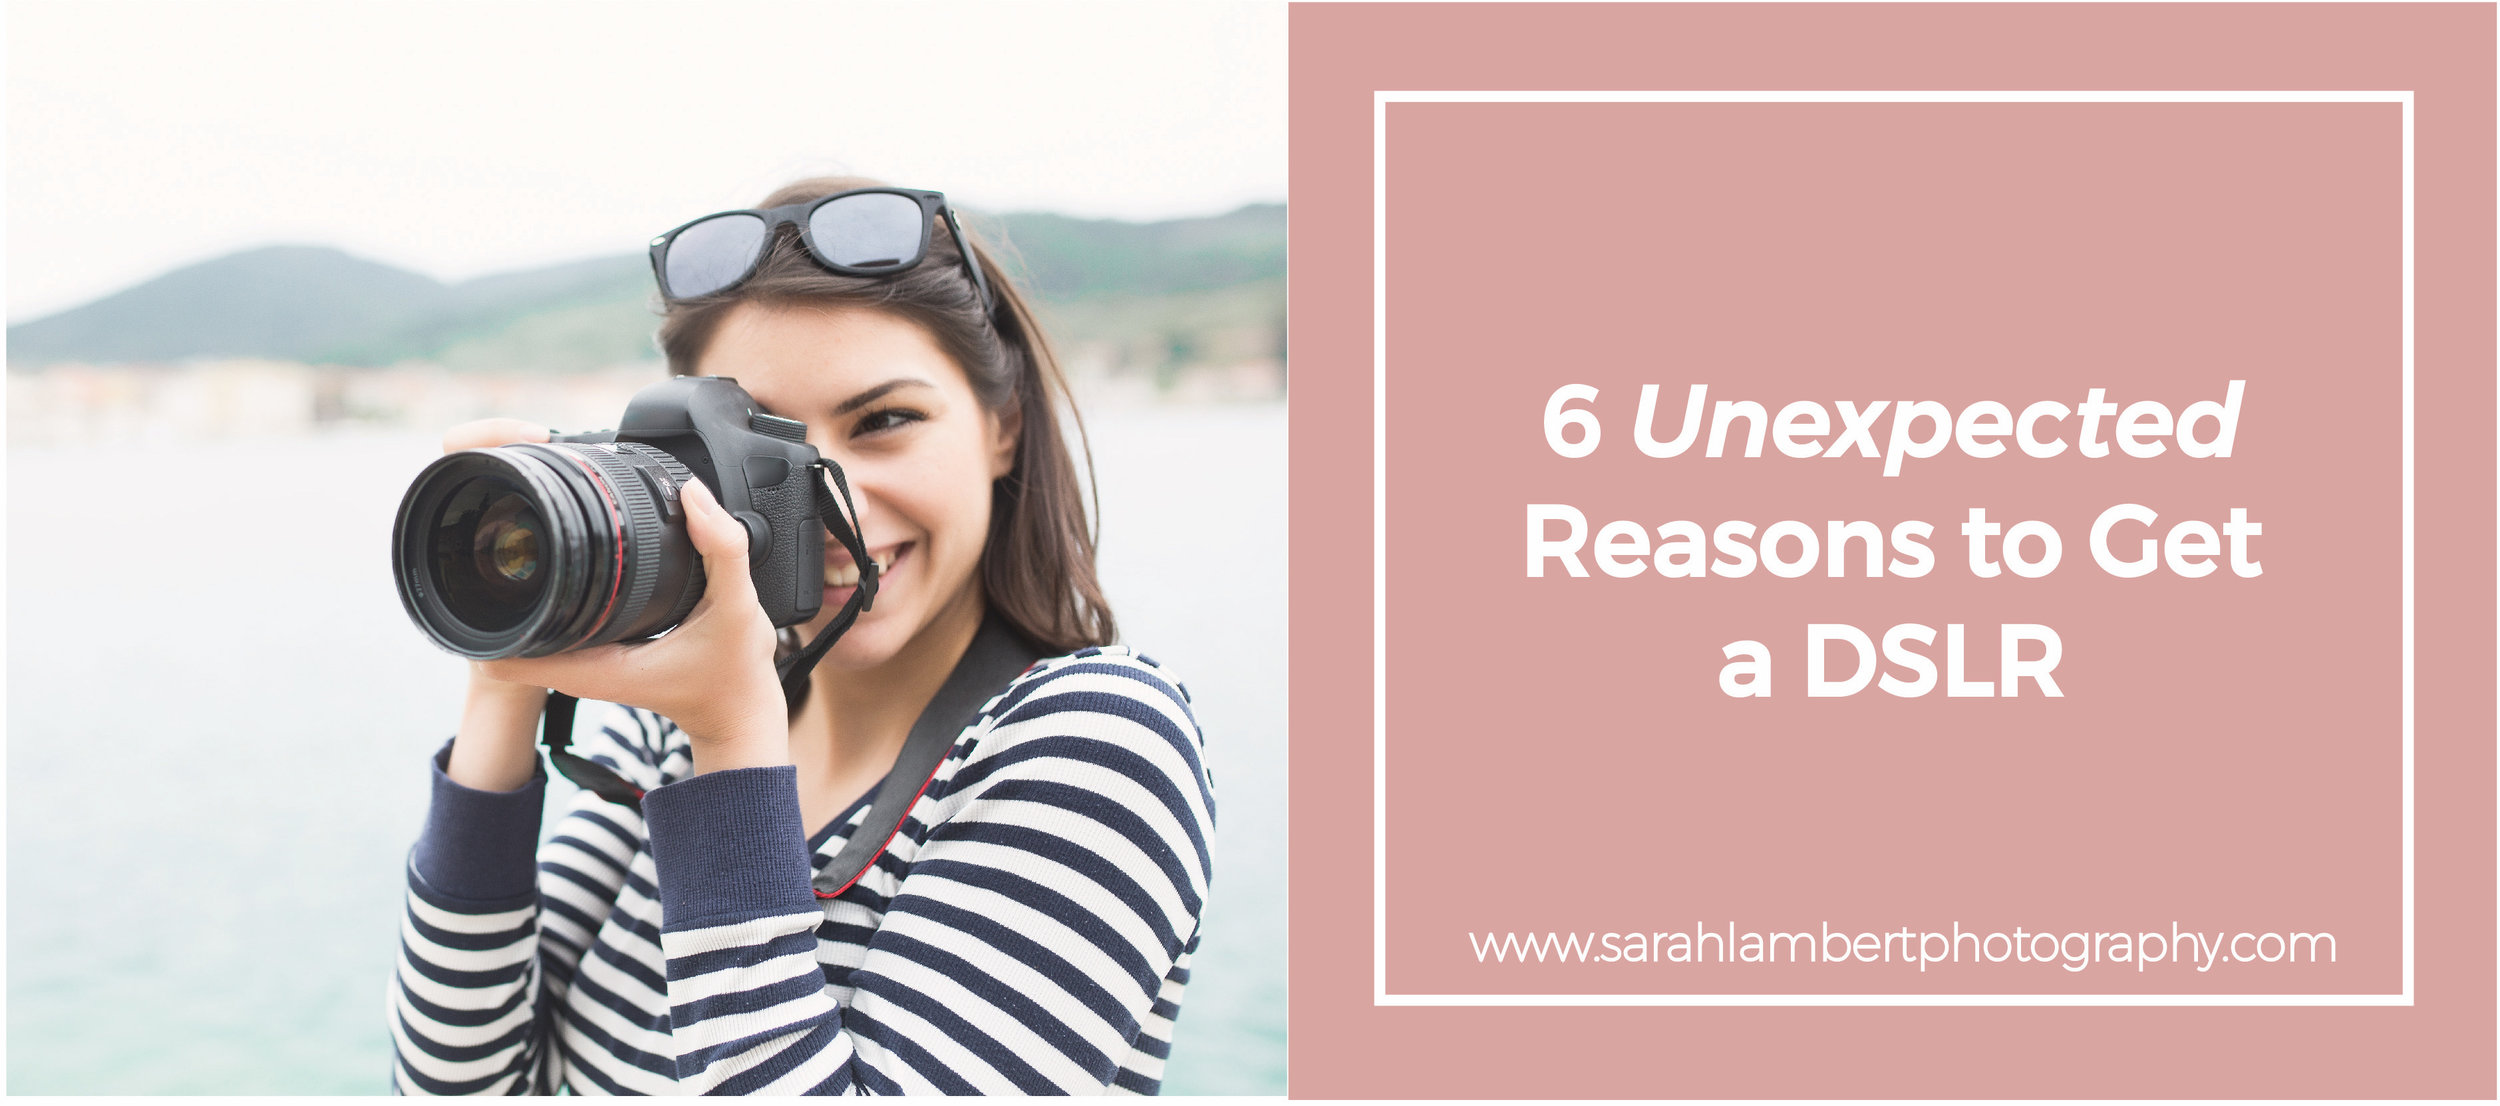 6 Unexpected Reasons.jpg